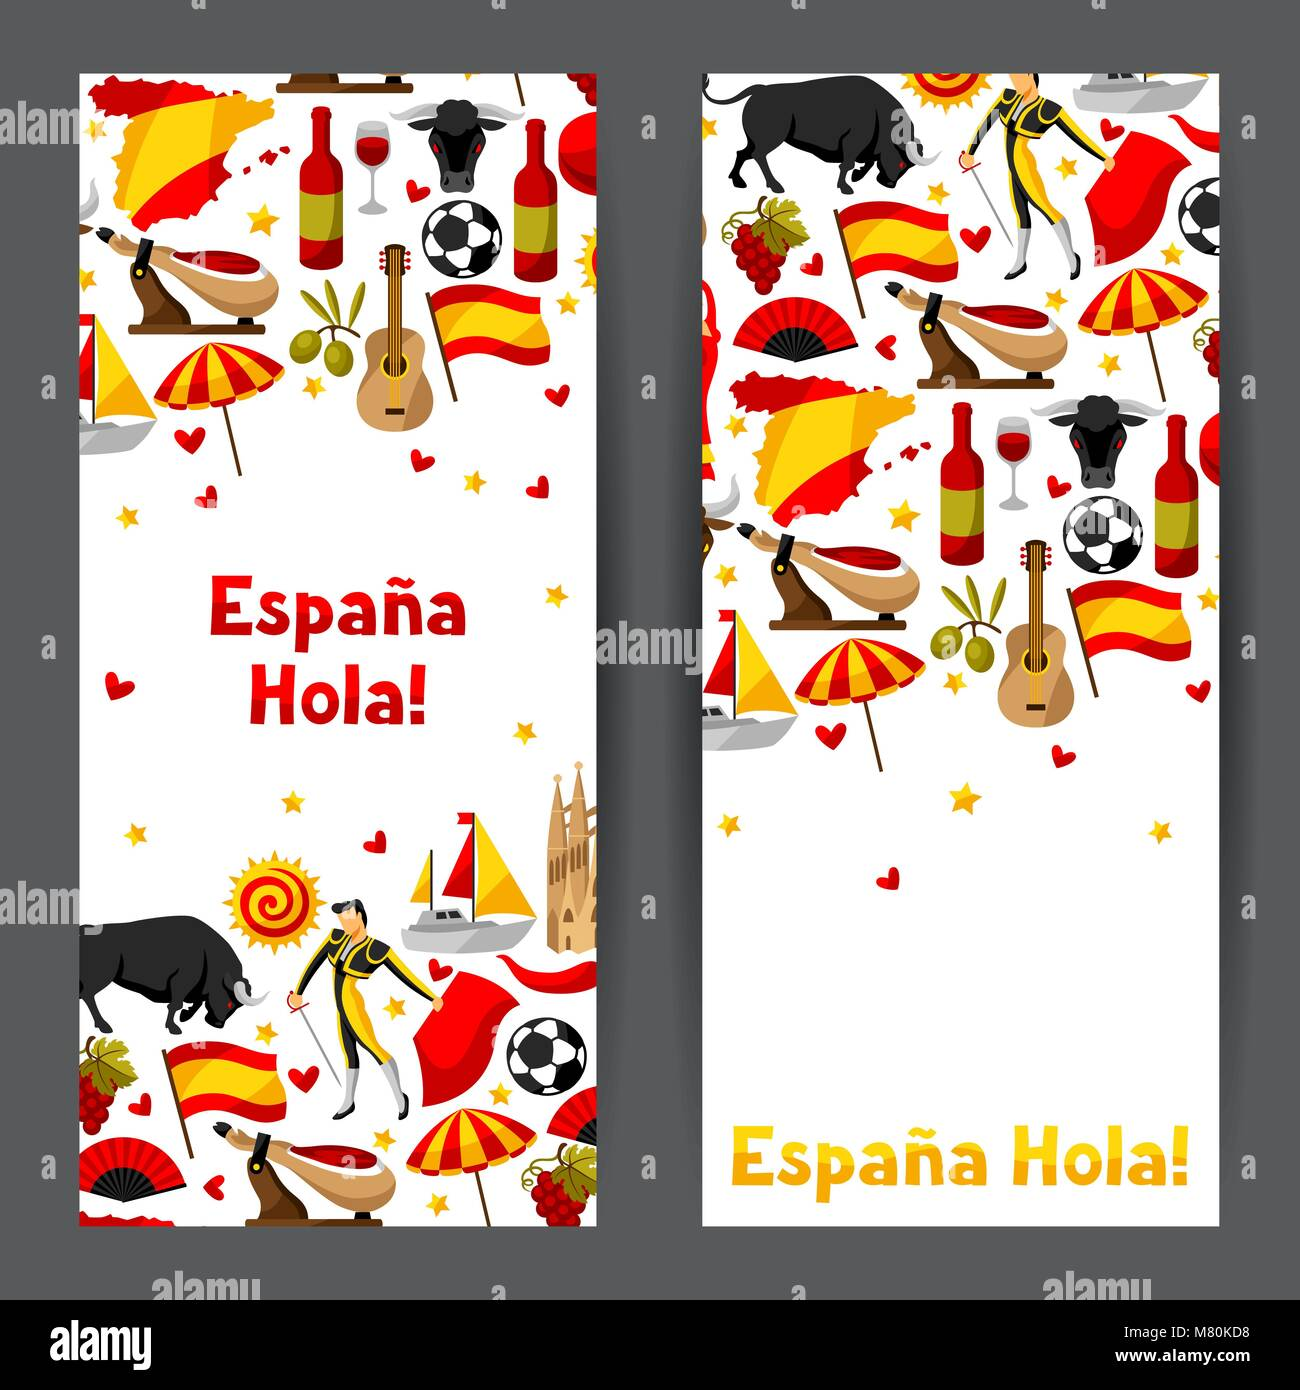 Spain banners design. Spanish traditional symbols and objects Stock Vector